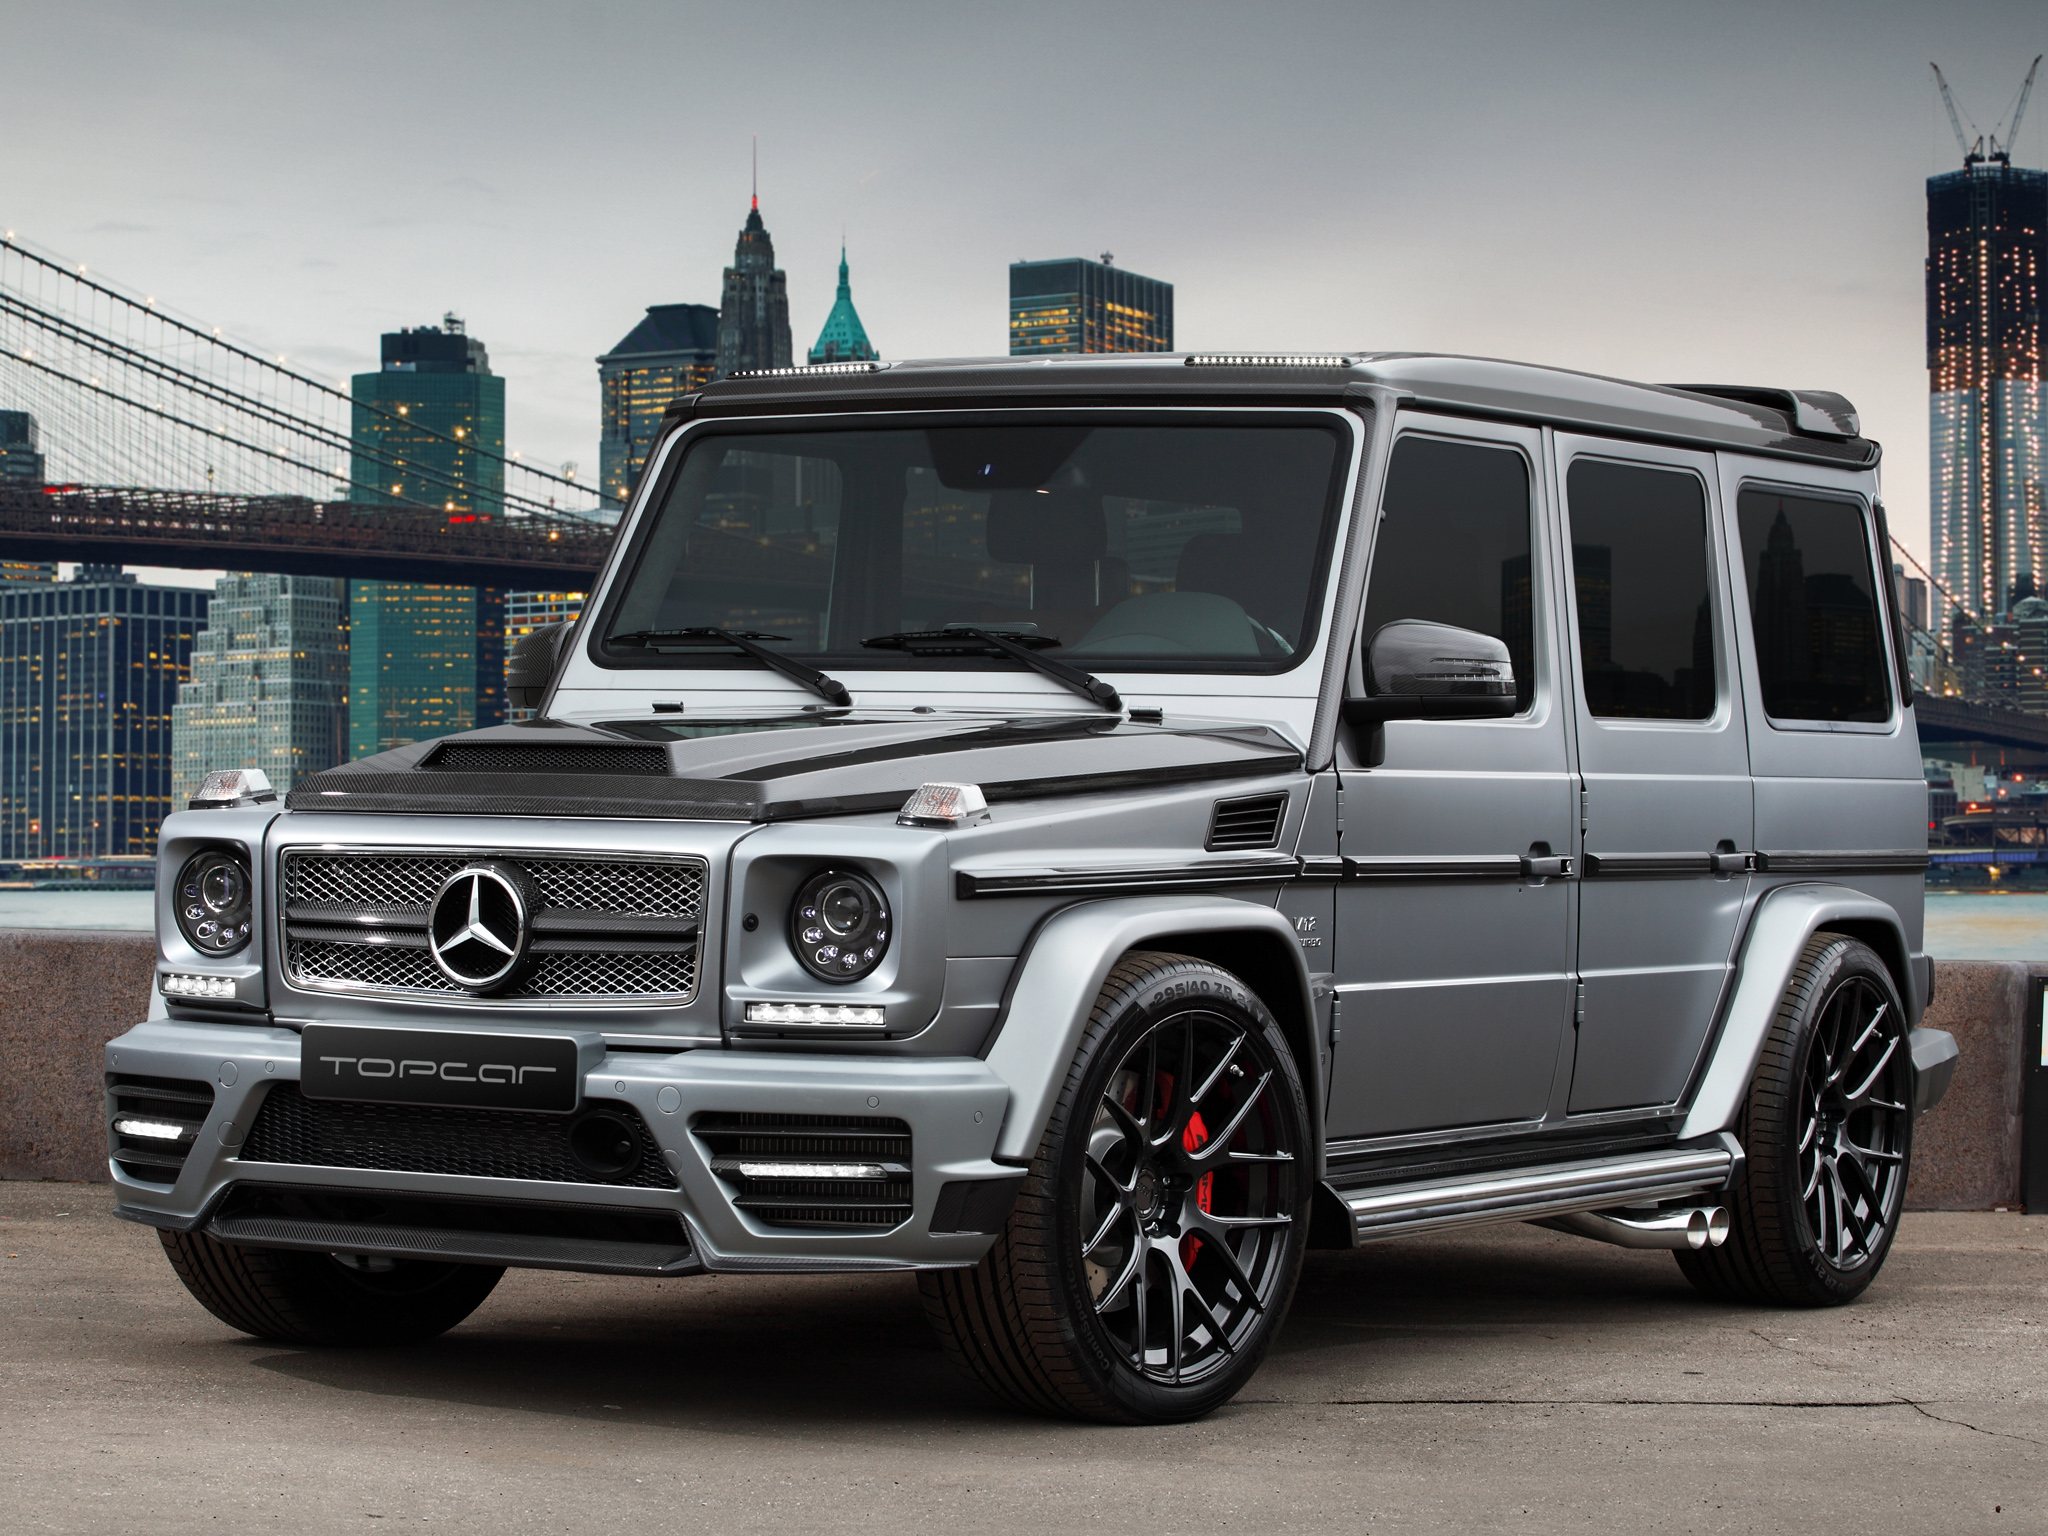 sale lhd mercedes class benz brabus widestar new jamesedition cars g in on london jeep united for based kingdom amg